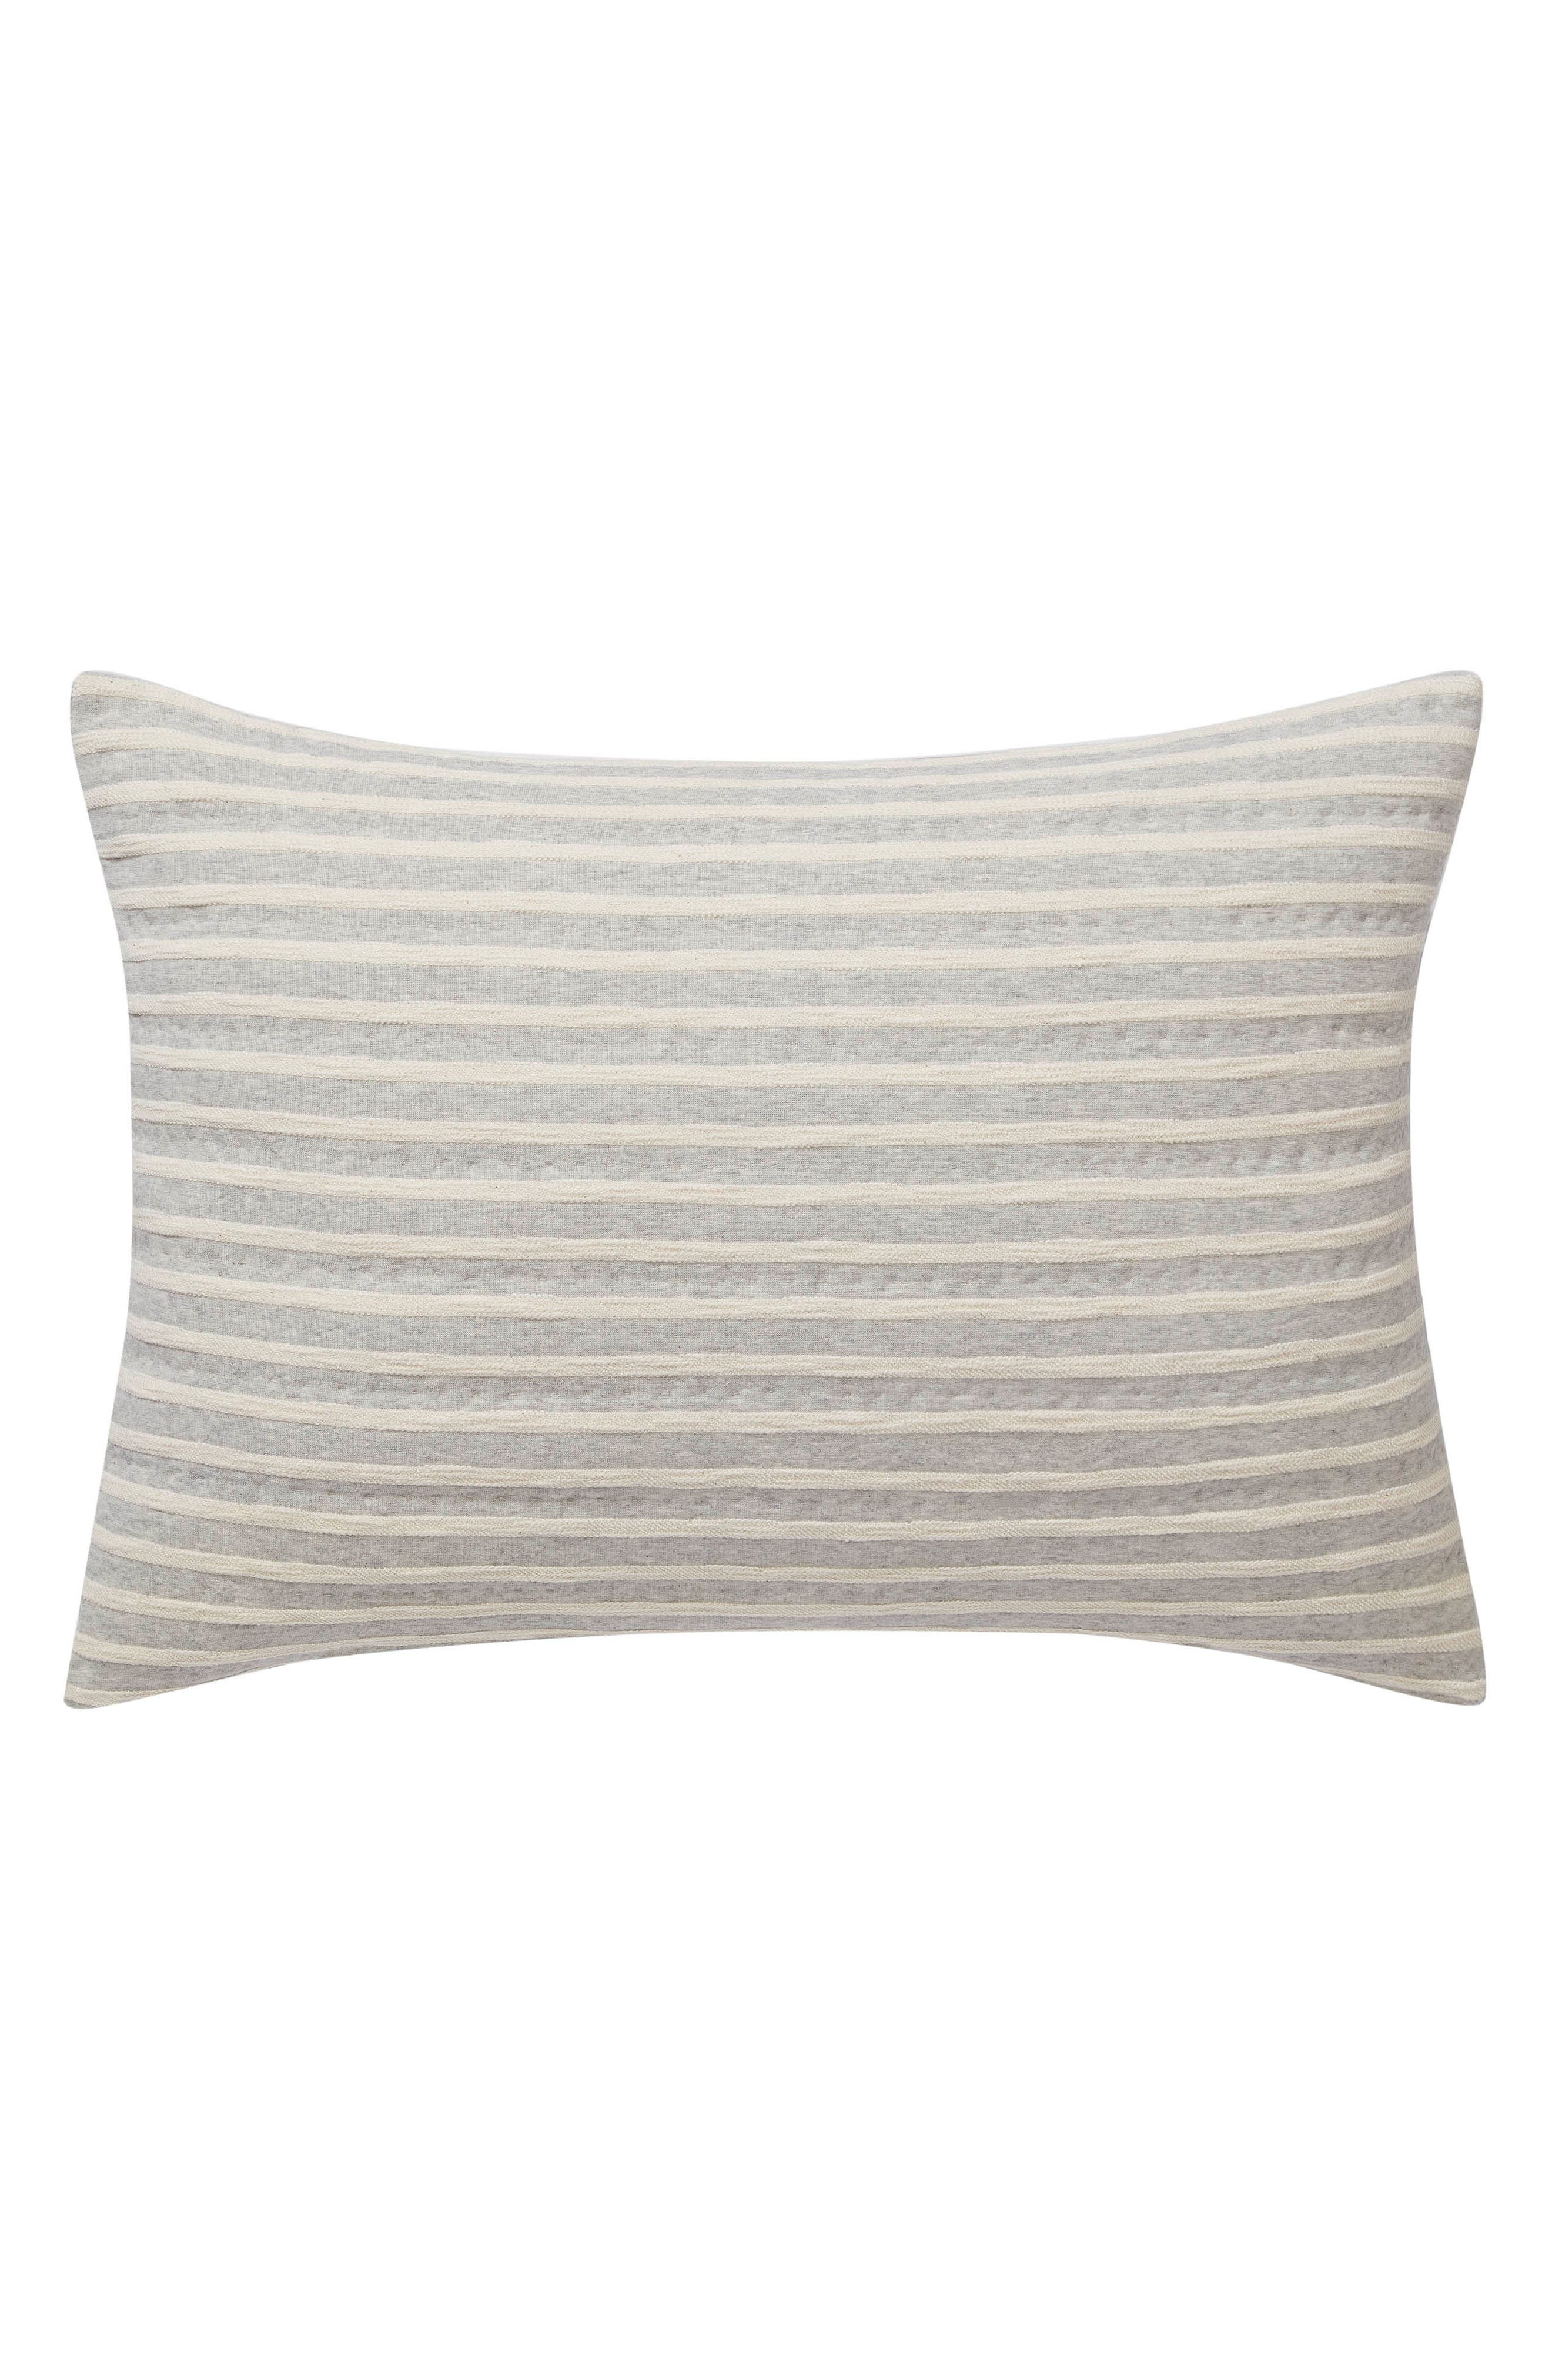 Horizontal Lines Sham,                         Main,                         color, Grey